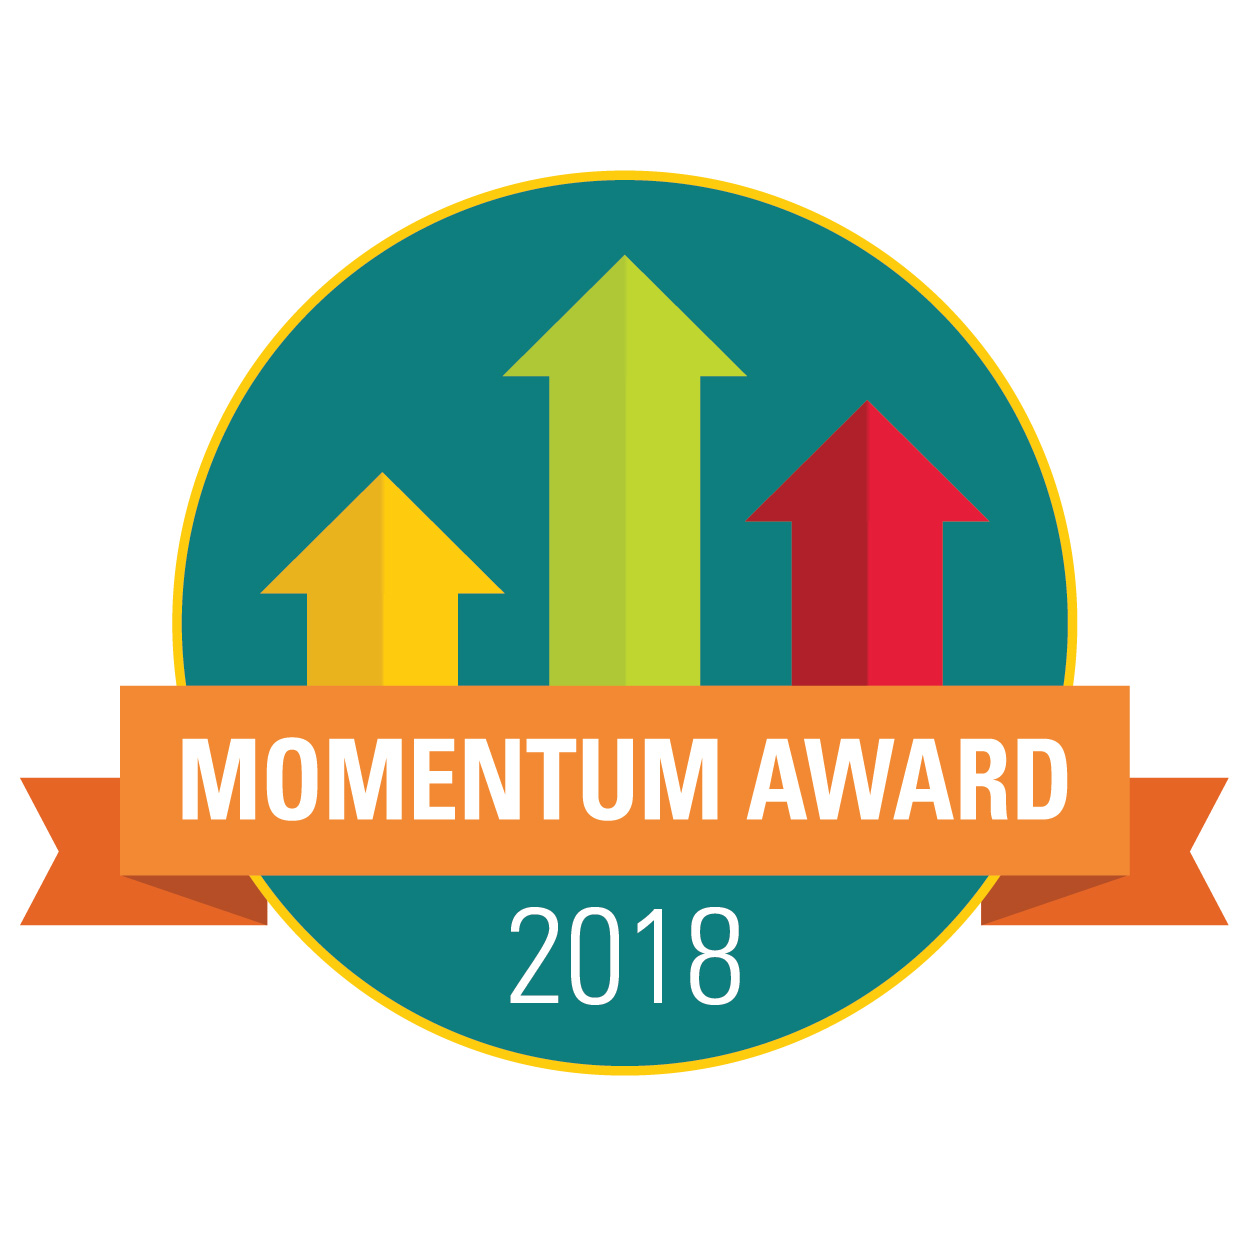 Momentum Award Logo for 2018